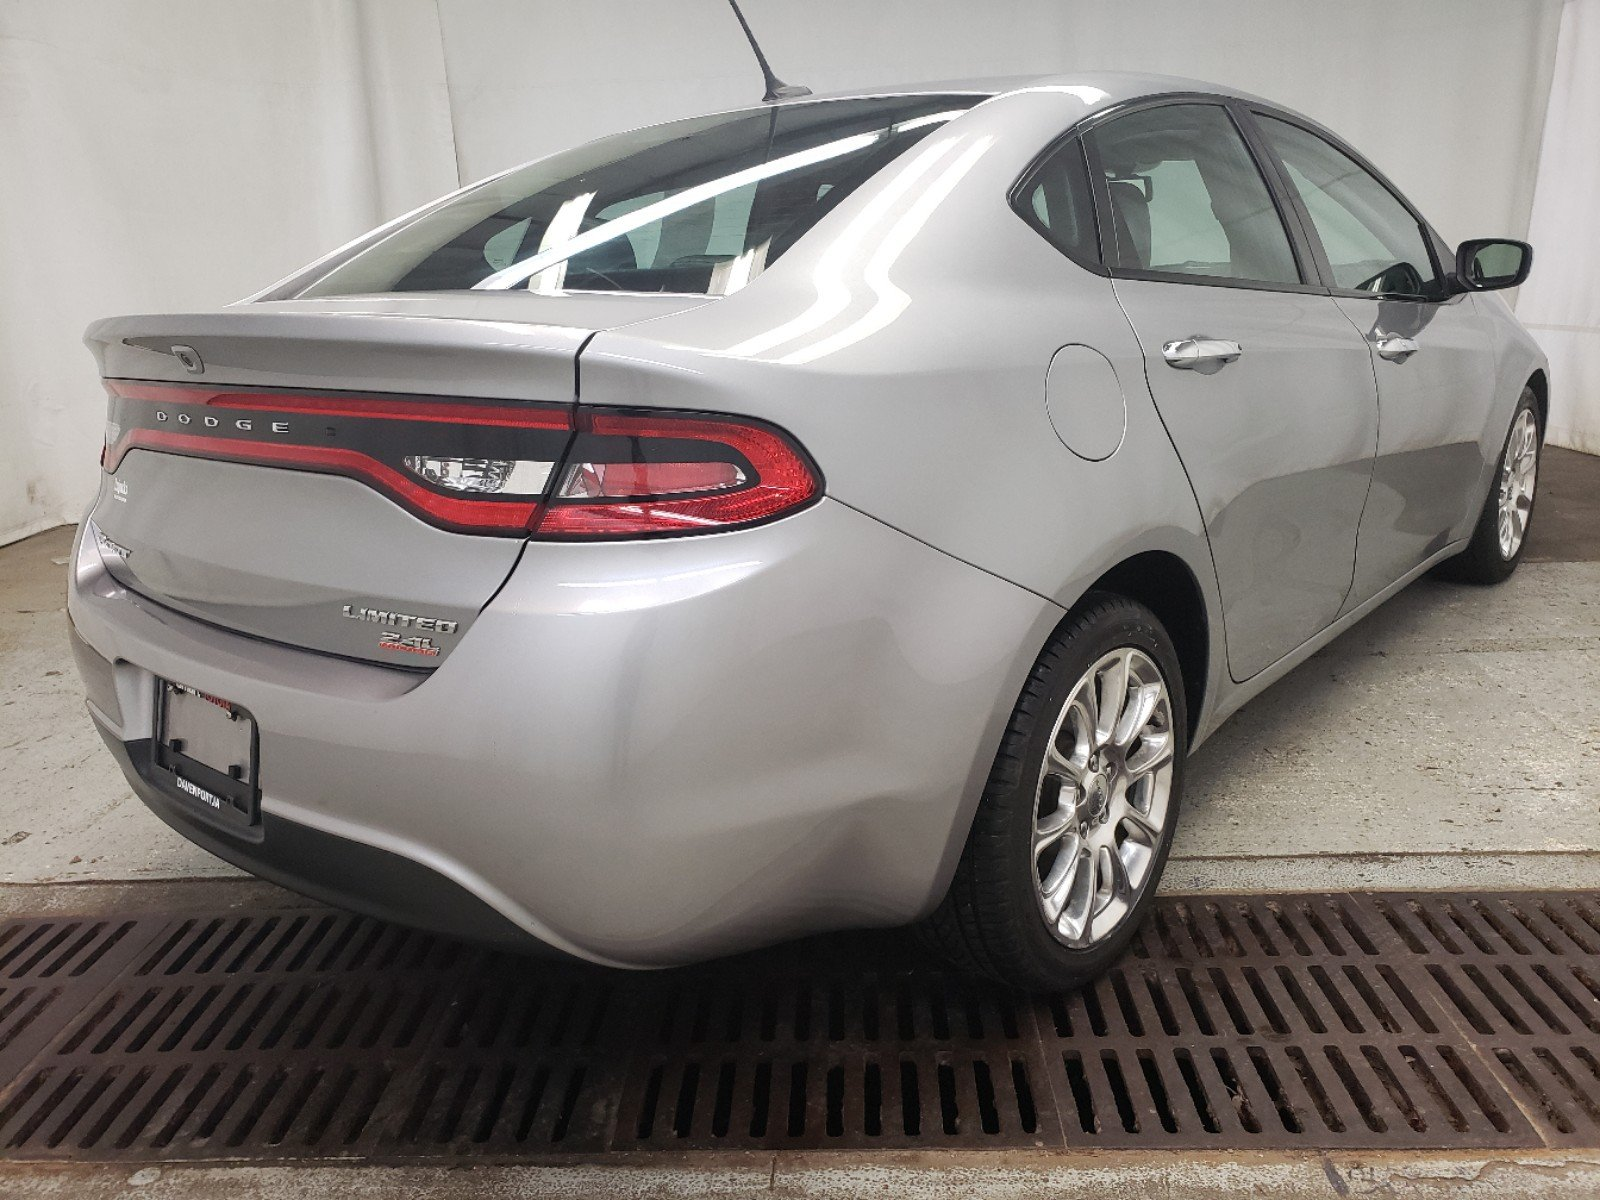 Pre-Owned 2014 Dodge Dart Limited